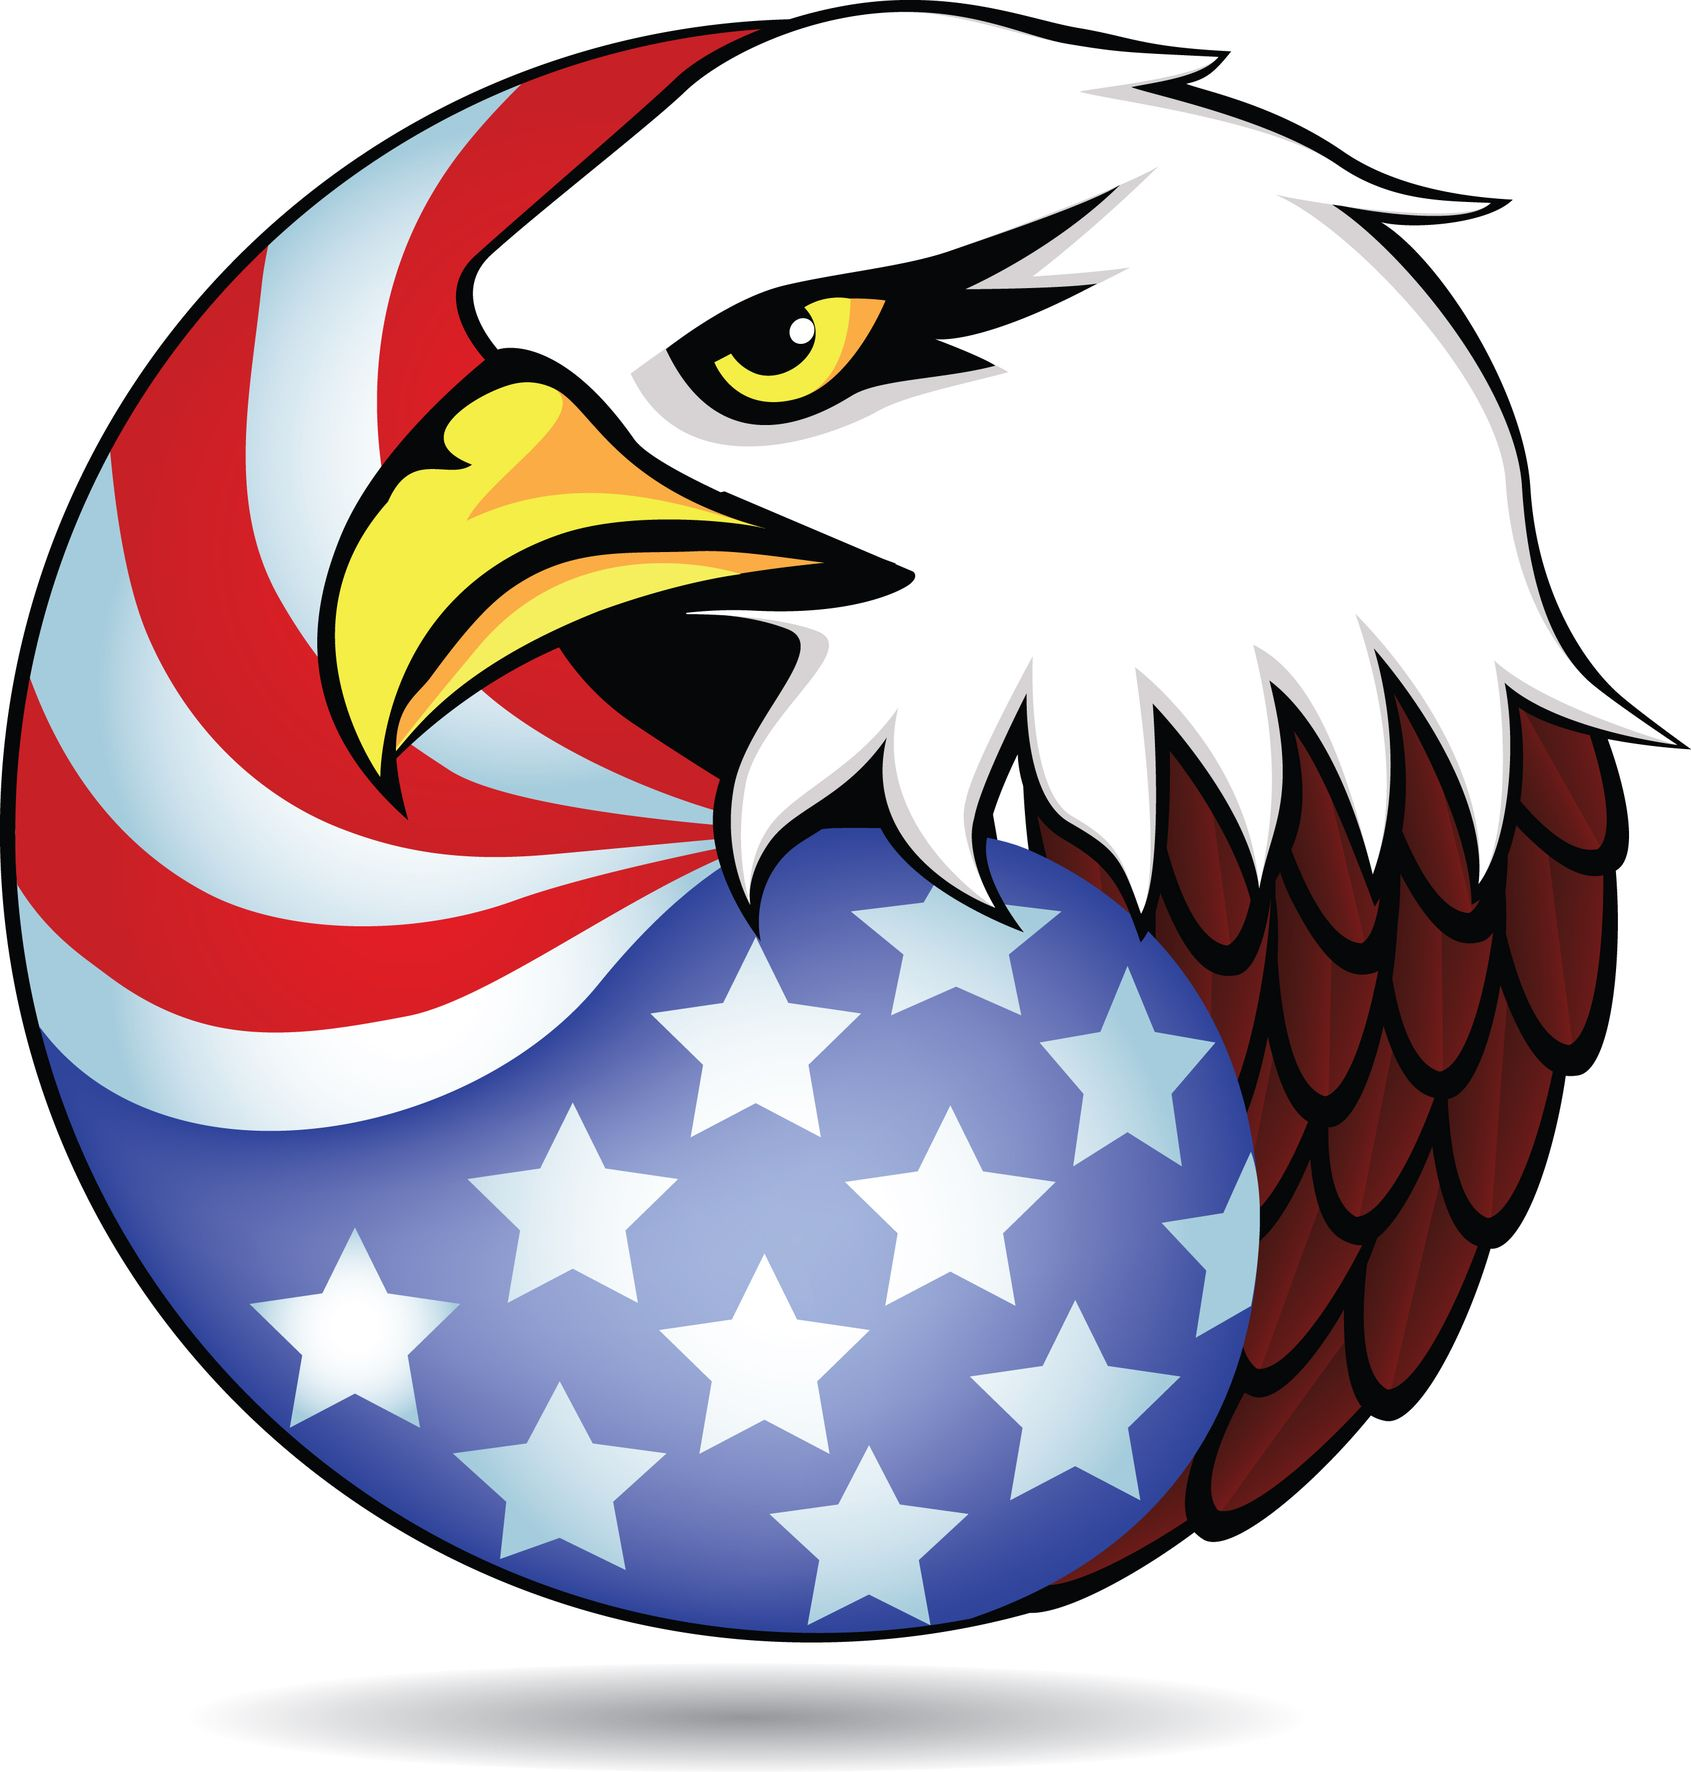 american flag background with eagle.